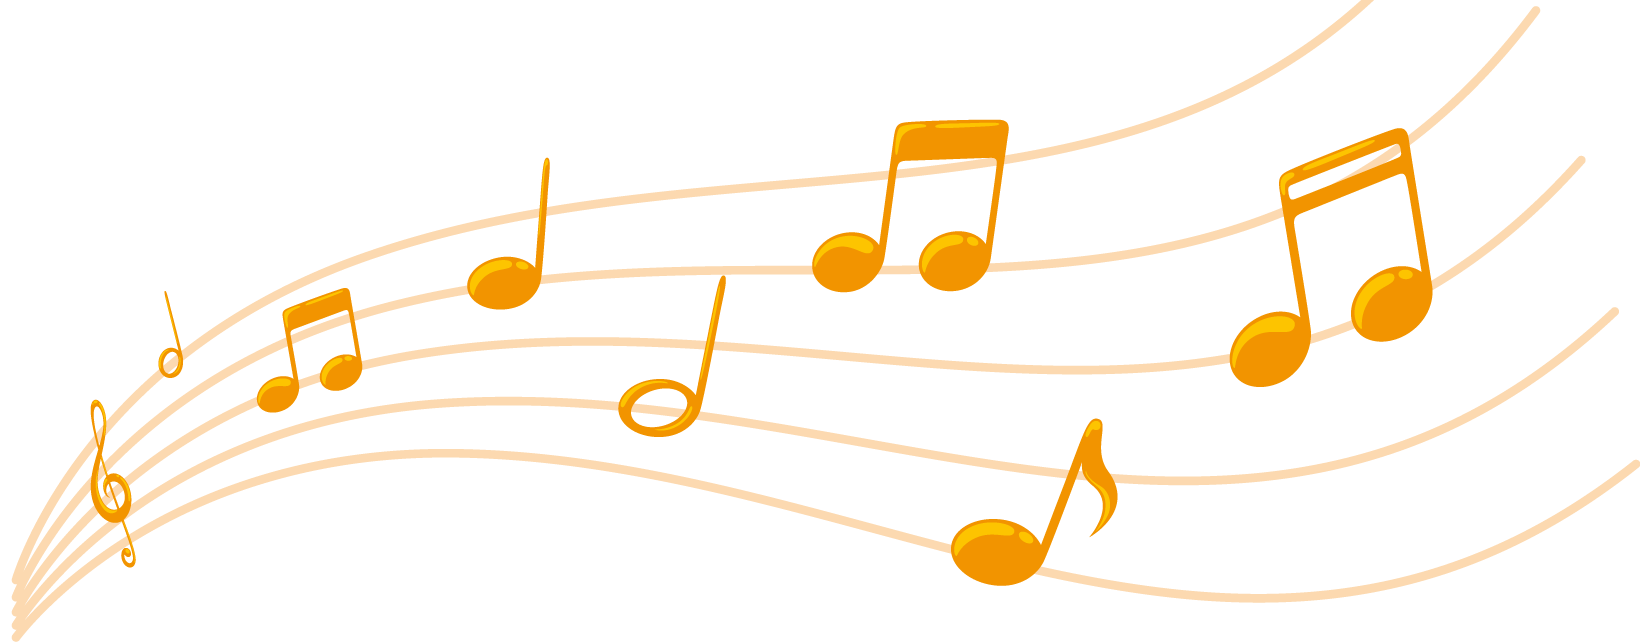 Music notes gold png